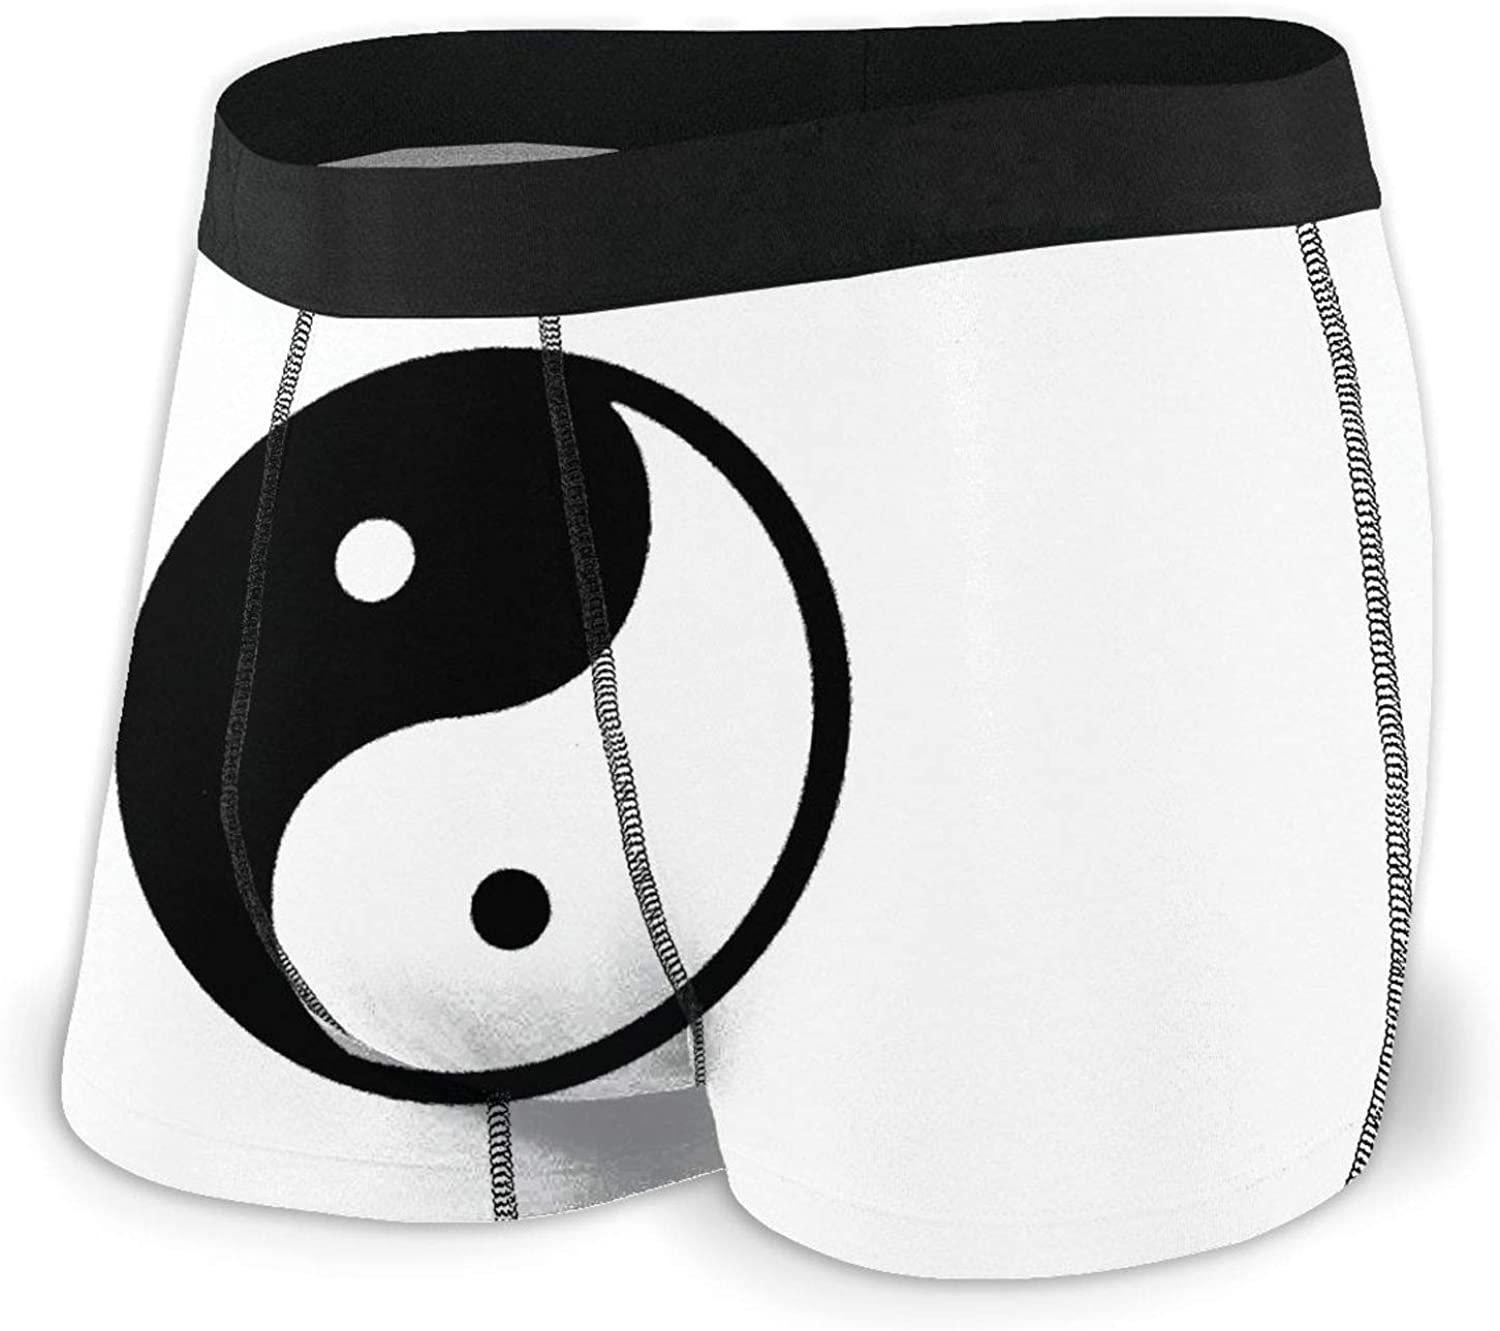 Yin Yang Black and White Breathable At Popular shop is the lowest price challenge the price of surprise Boxer Men's Comfortab Briefs